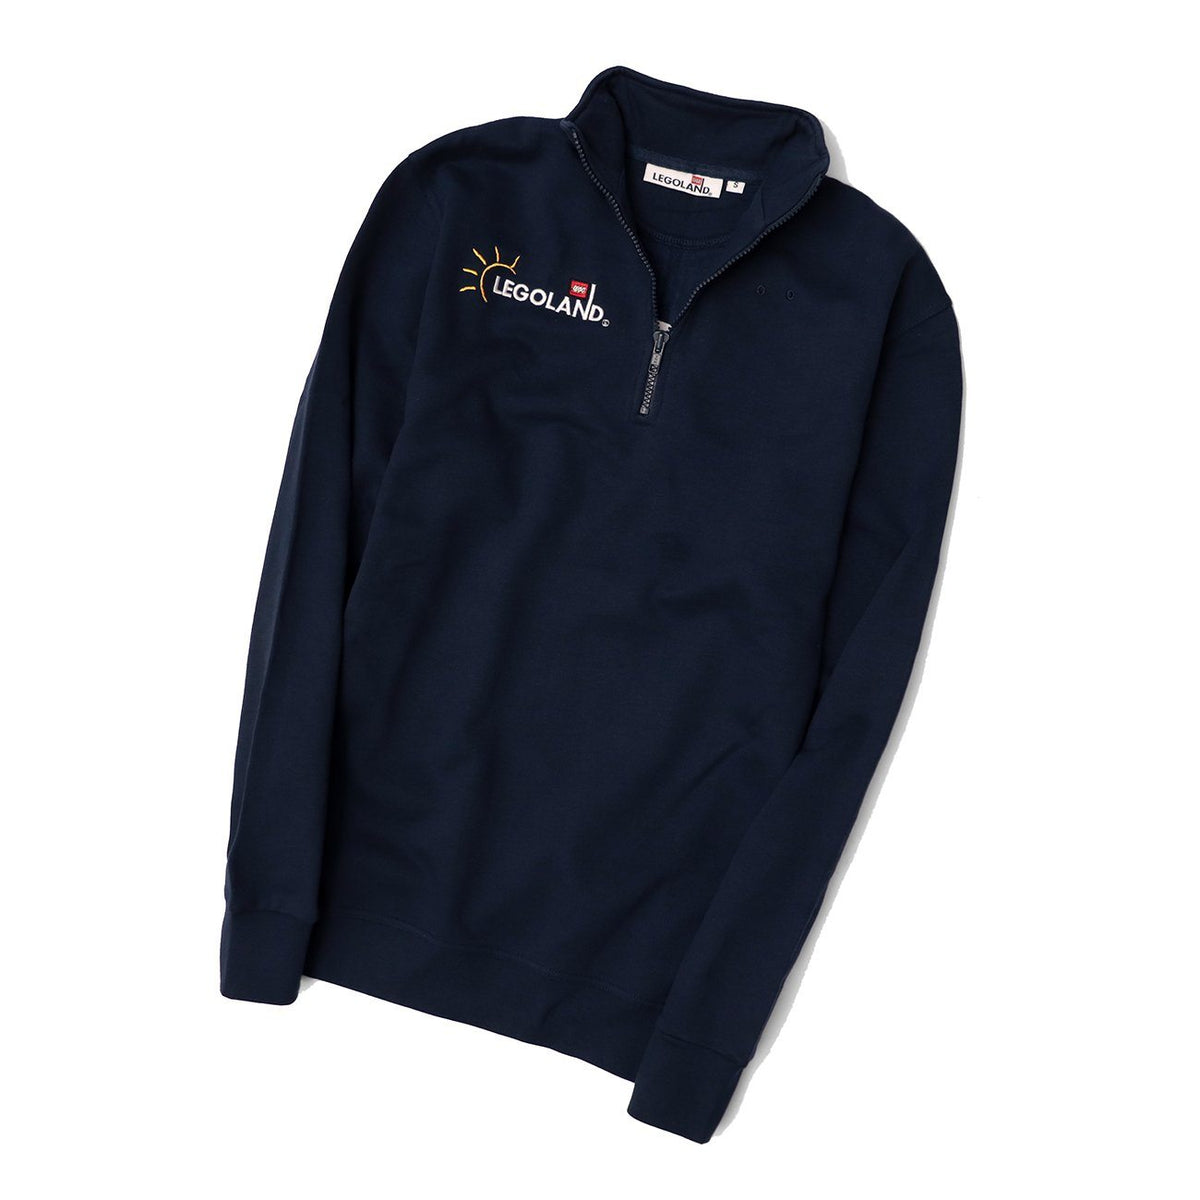 Men Navy Premium Quarter Zipper Fleece Embroidered Sweatshirt (30185)